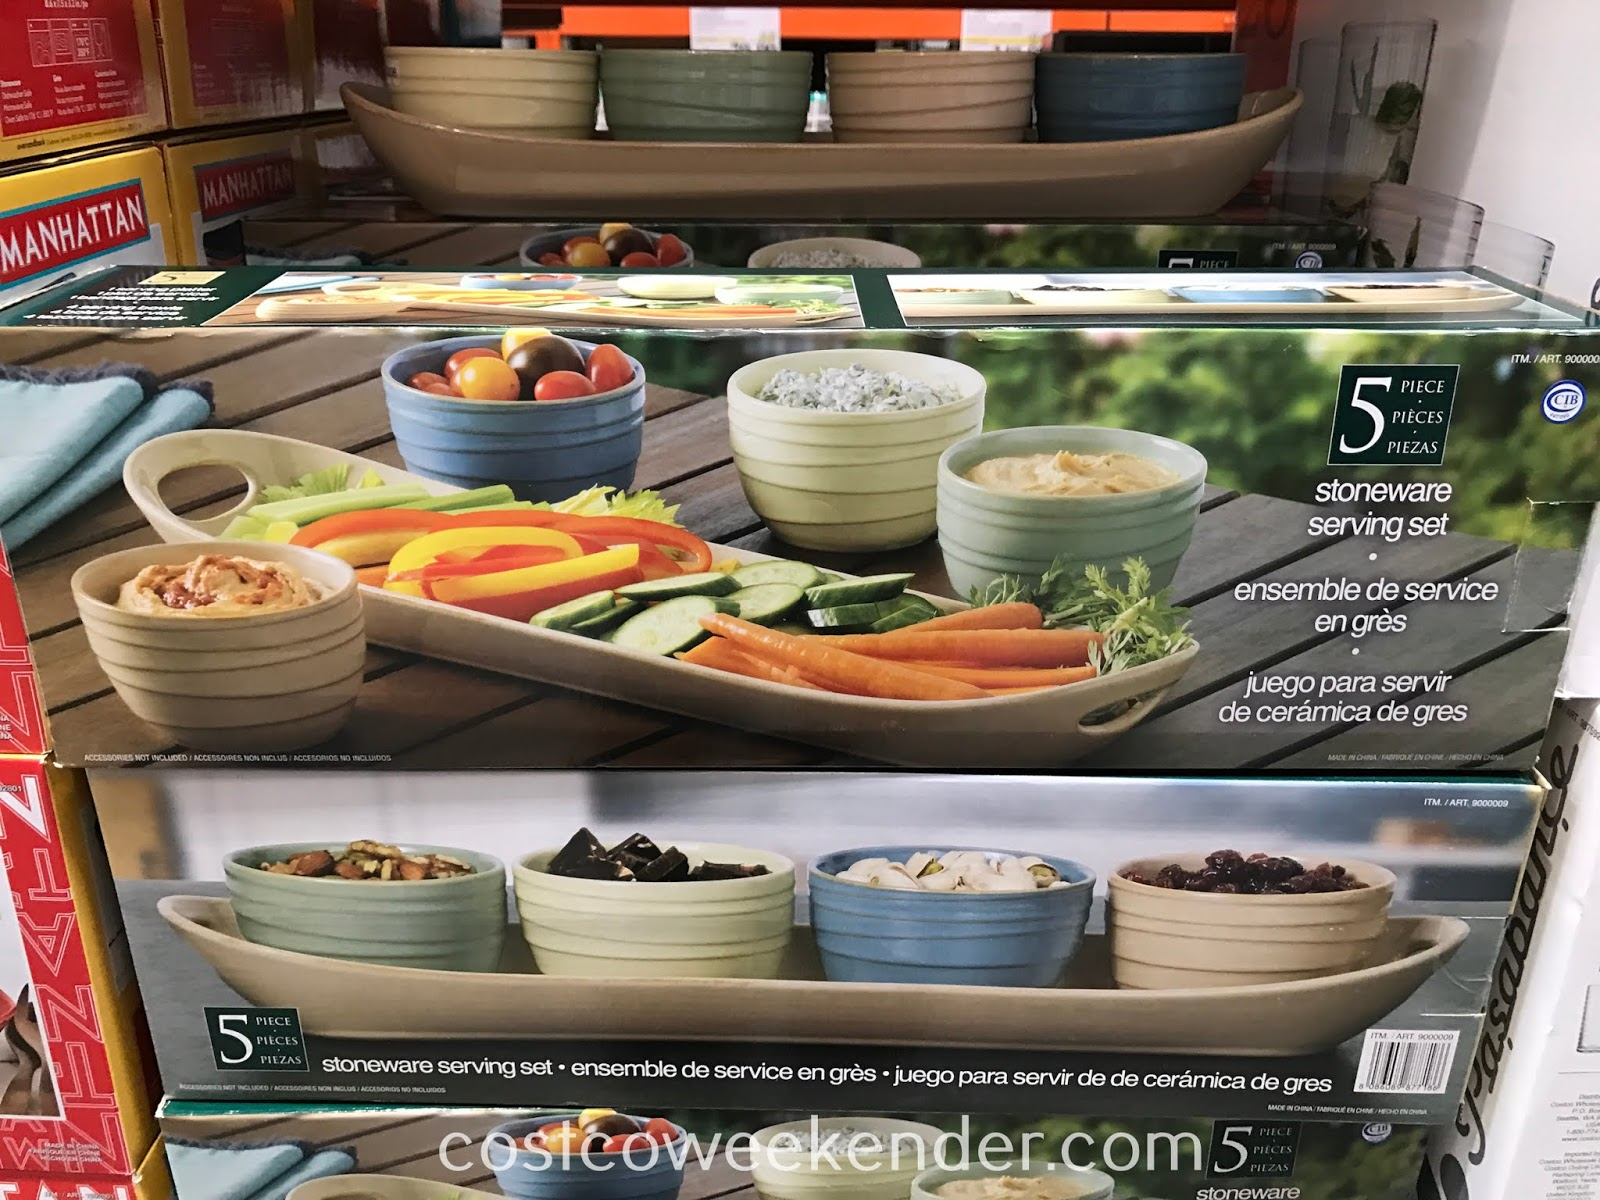 Costco 9000009 - 5-piece Stoneware Serving Set: great for hosting parties and get togethers